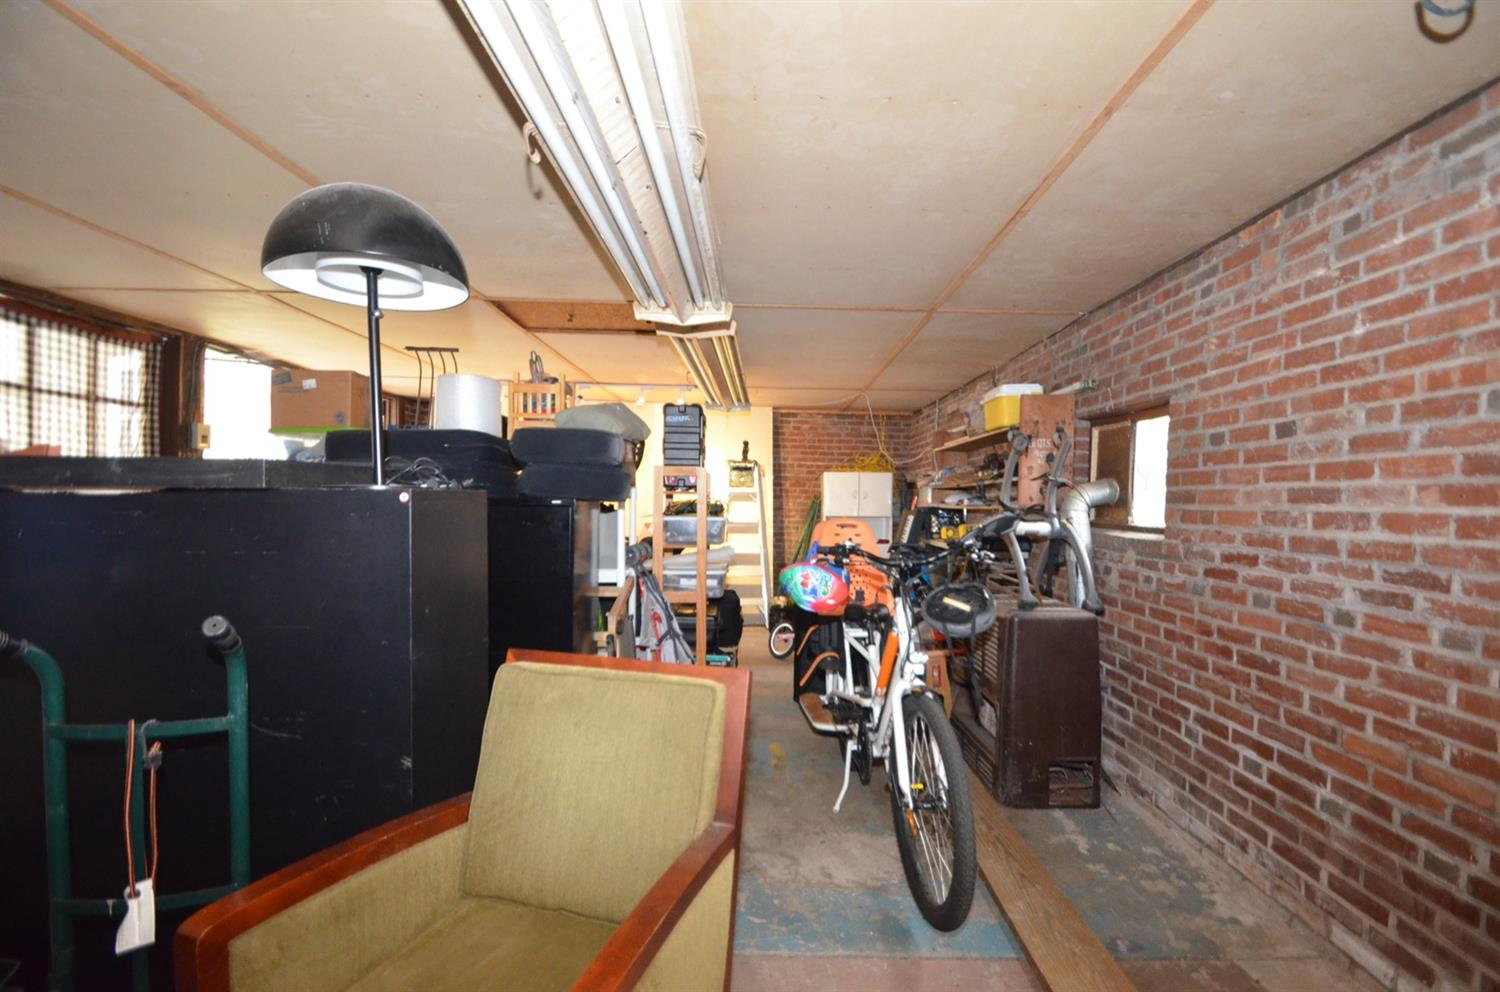 This is inside the garage, which is currently being used for storage.  Building has electric. Heater/furnace is included, but has never been used by current owner and is not warranted. Garage sold as is, but it's so cool!